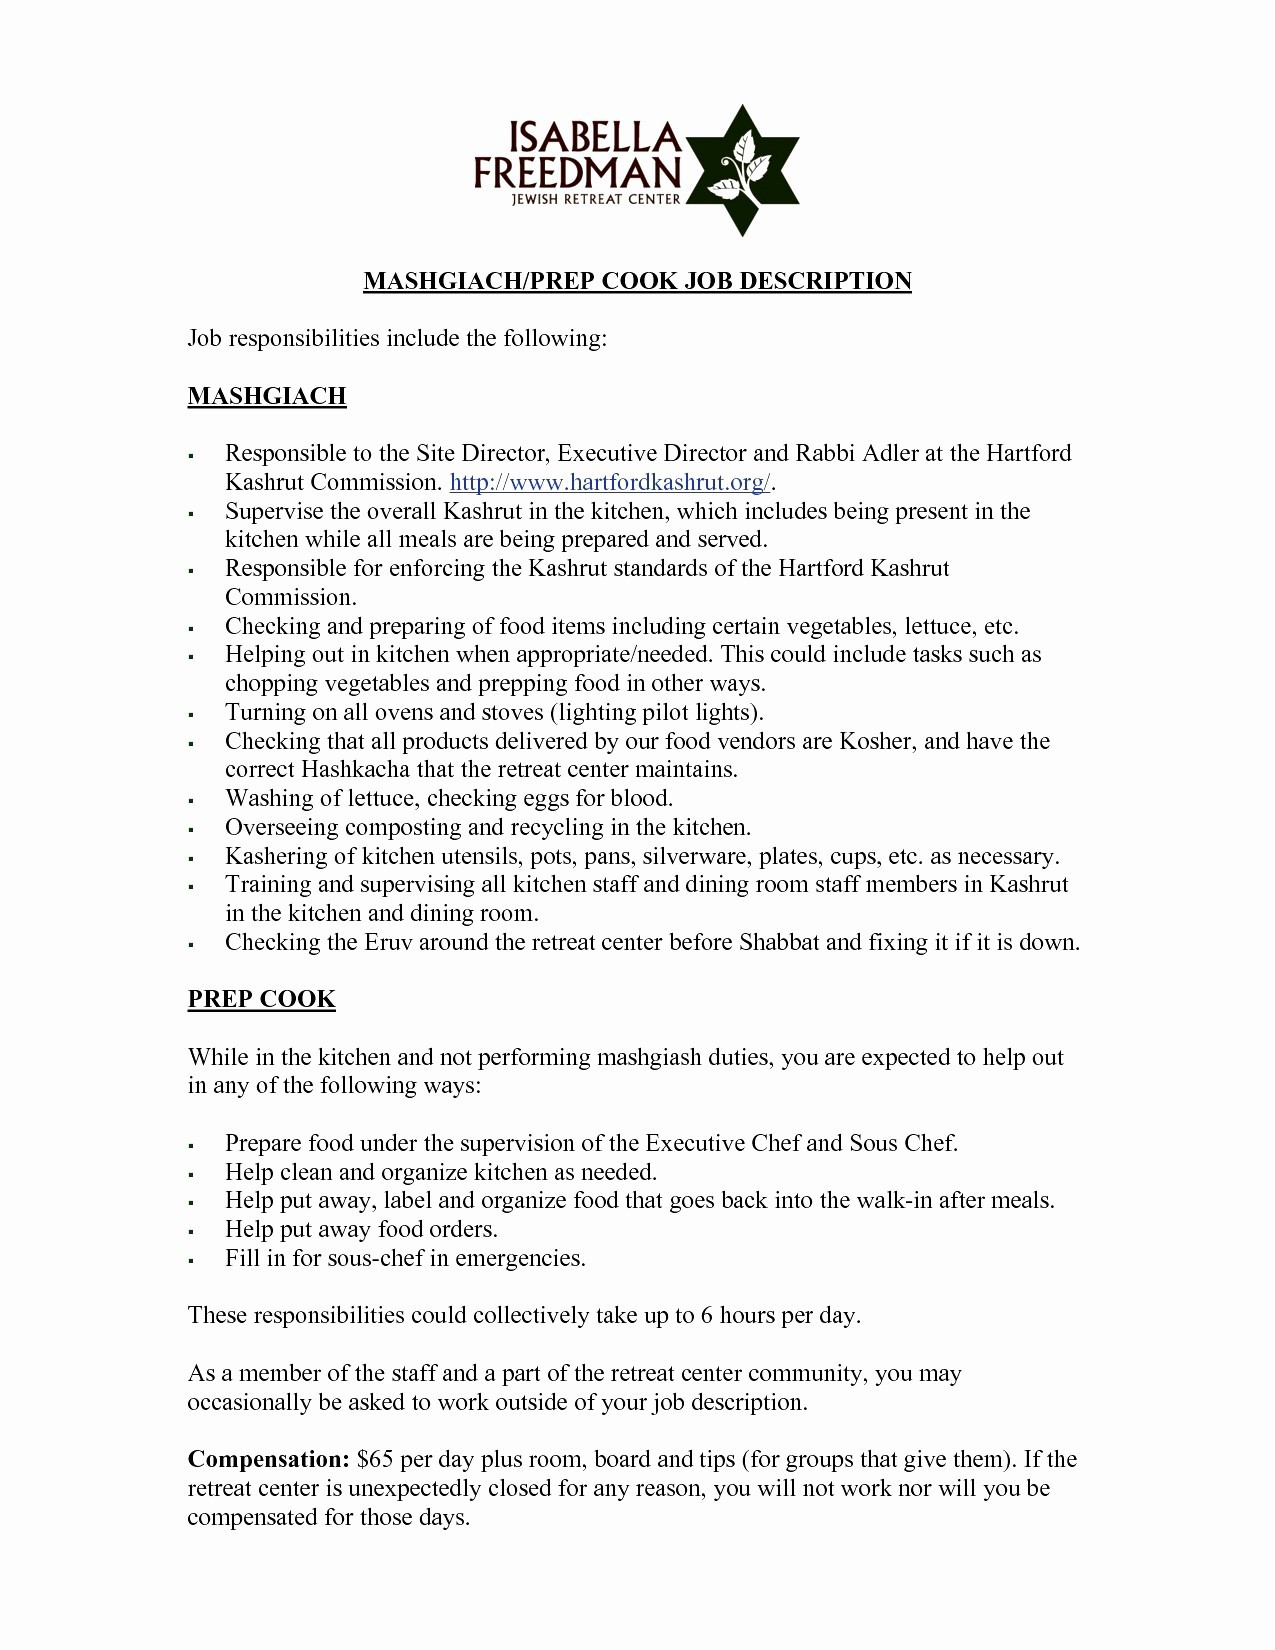 Cover Letter Template Google Docs - Free Resume Templates Google Docs New Luxury Cover Letter Template